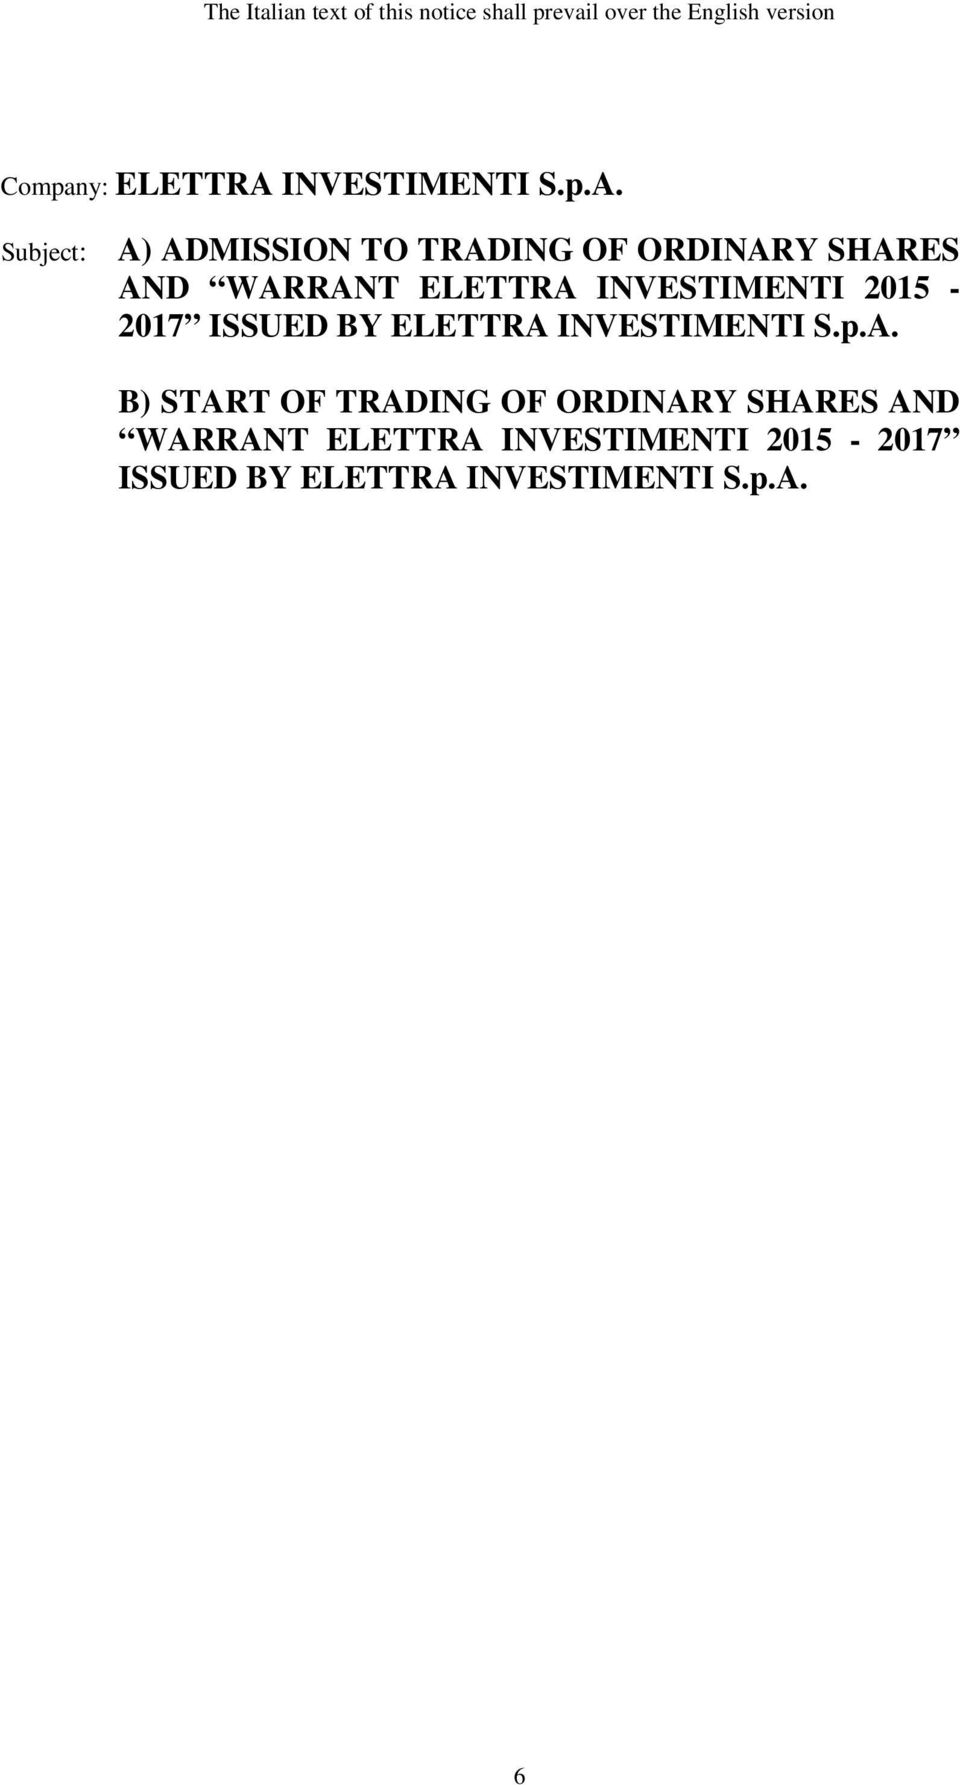 Subject: A) ADMISSION TO TRADING OF ORDINARY SHARES AND WARRANT ELETTRA INVESTIMENTI